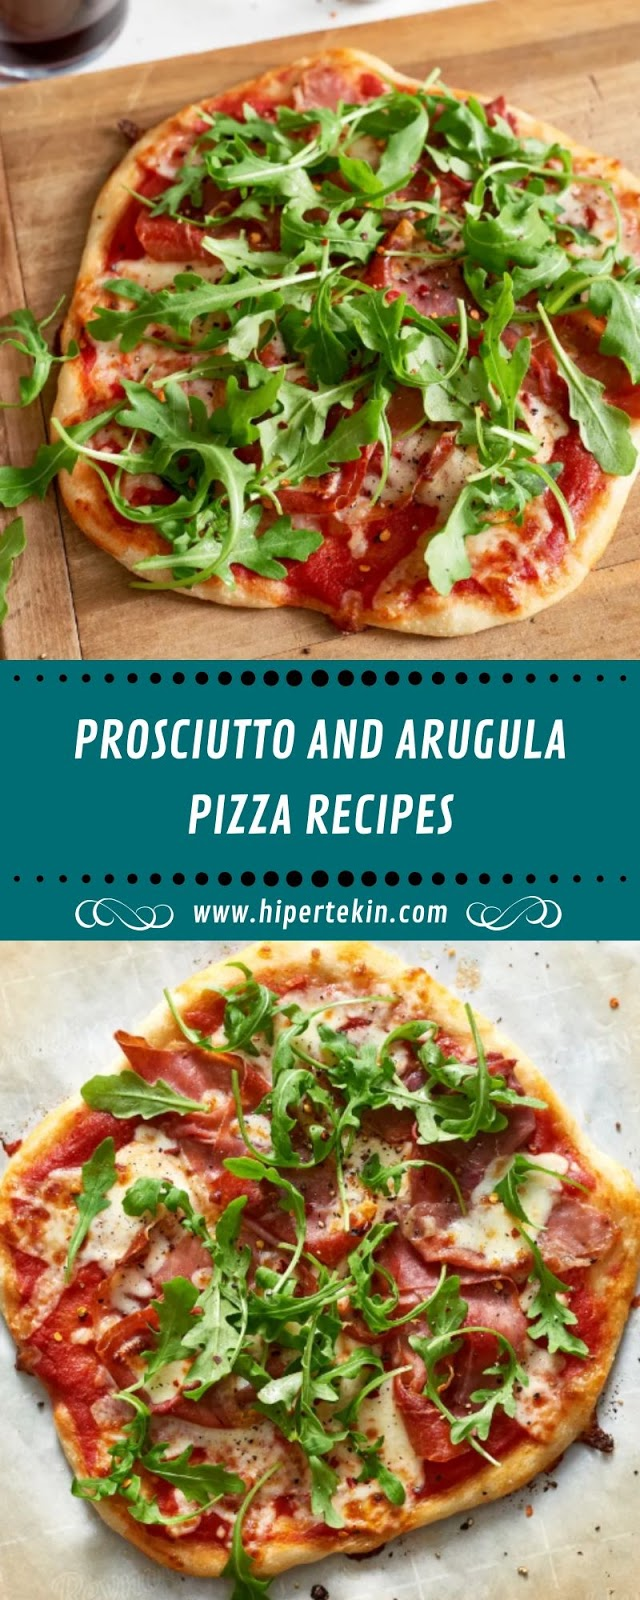 PROSCIUTTO AND ARUGULA PIZZA RECIPES